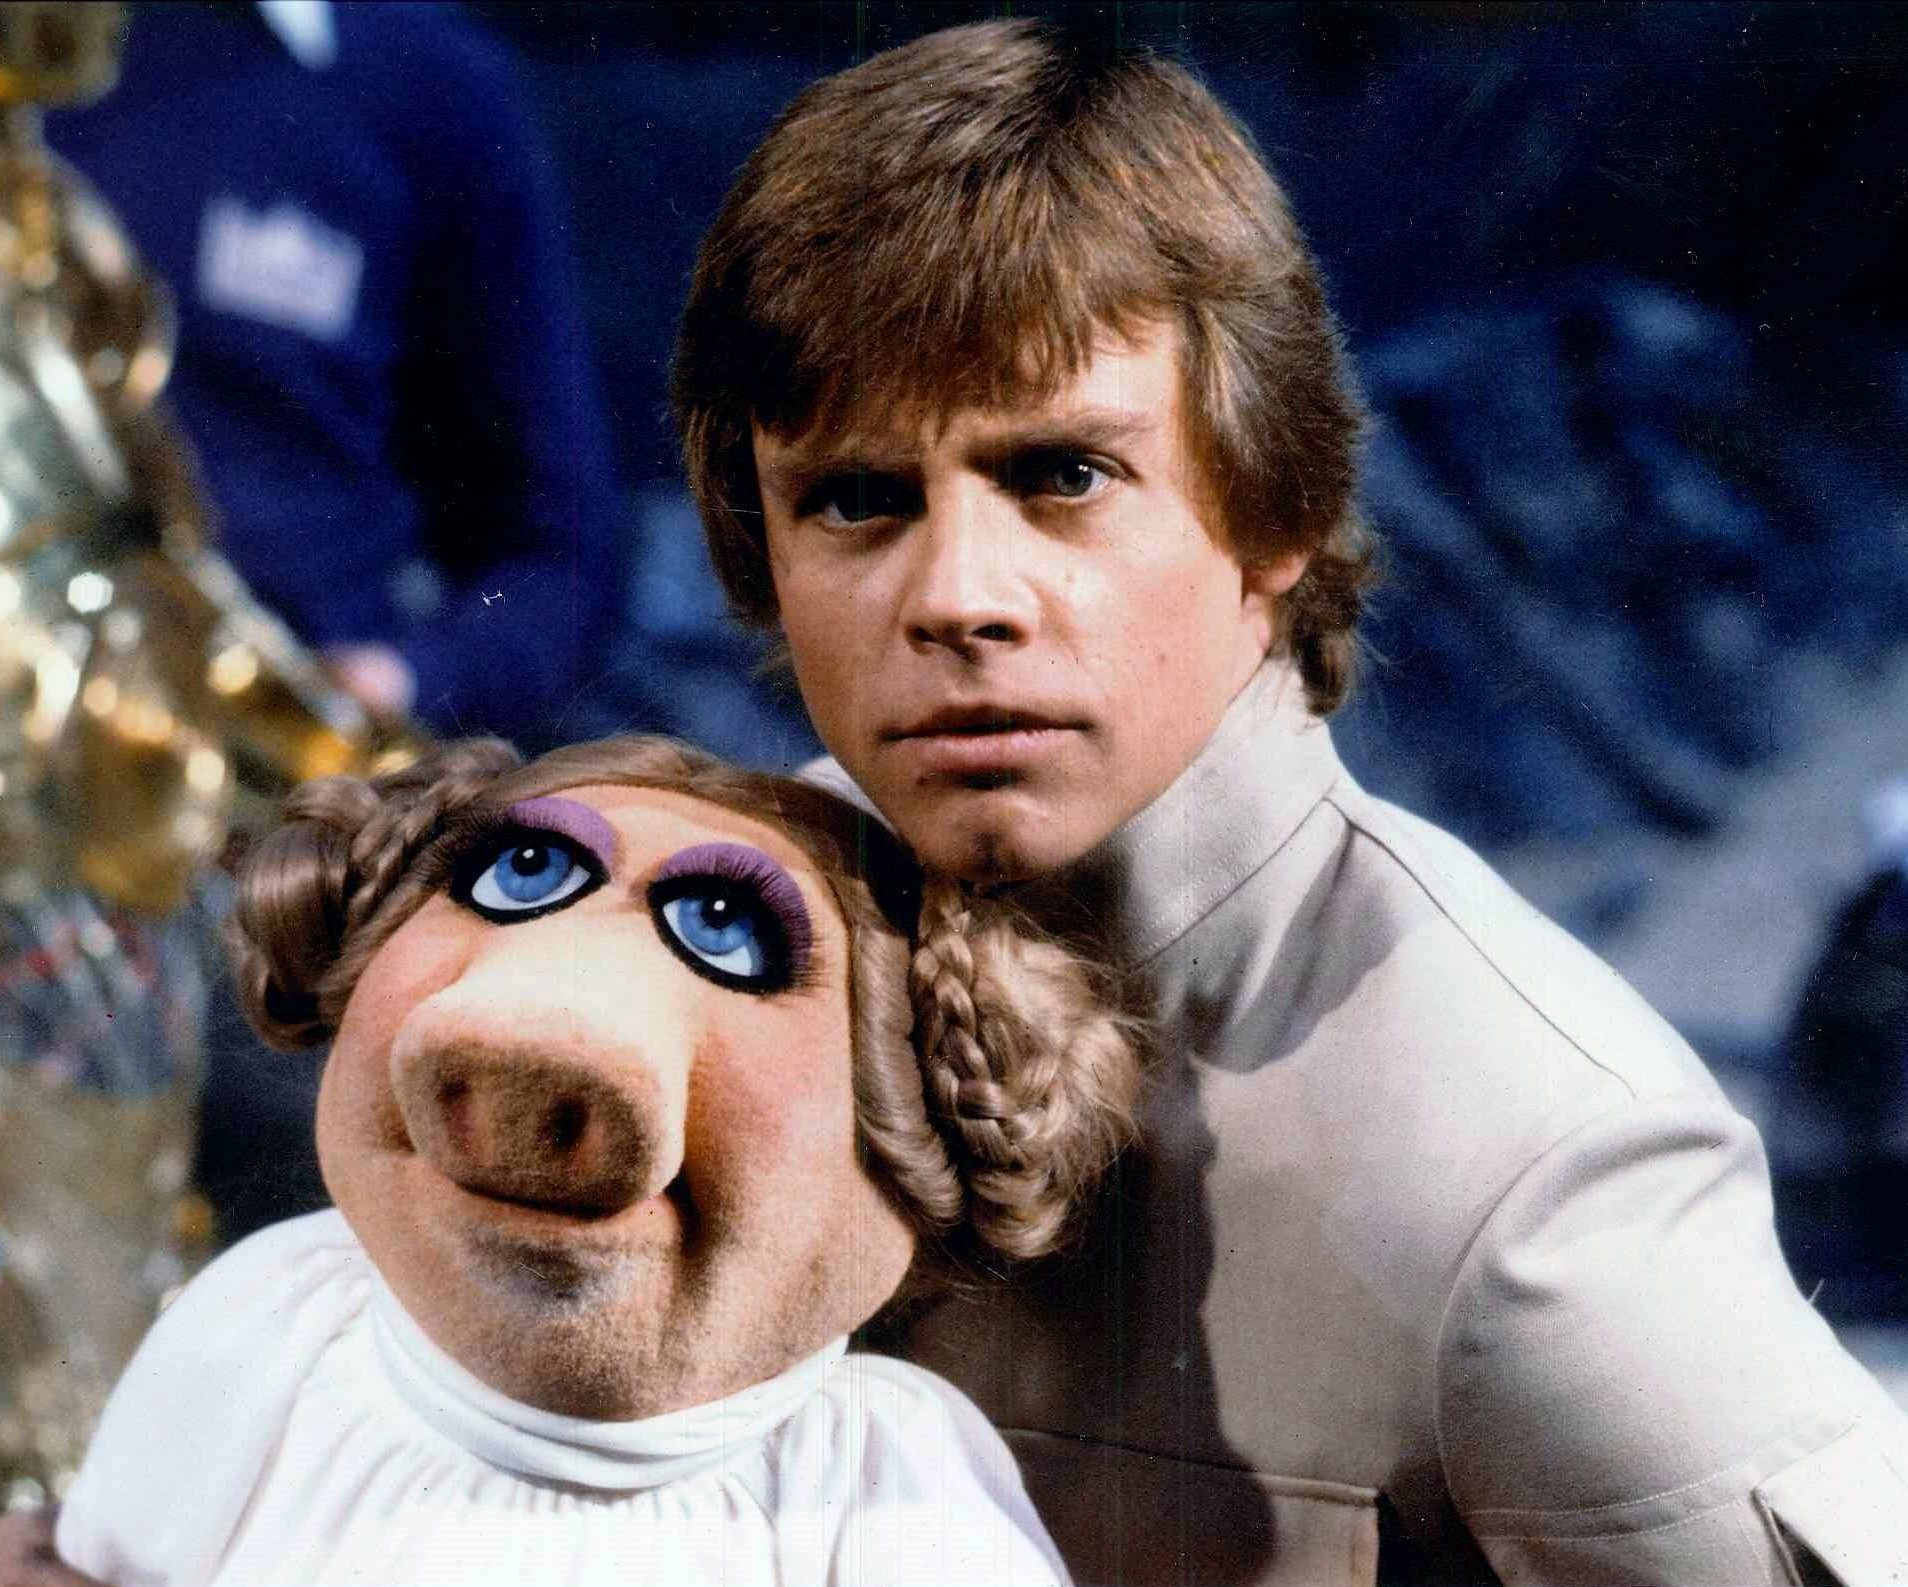 44 e1601540720909 20 Little-Known Facts About The Legendary Mark Hamill